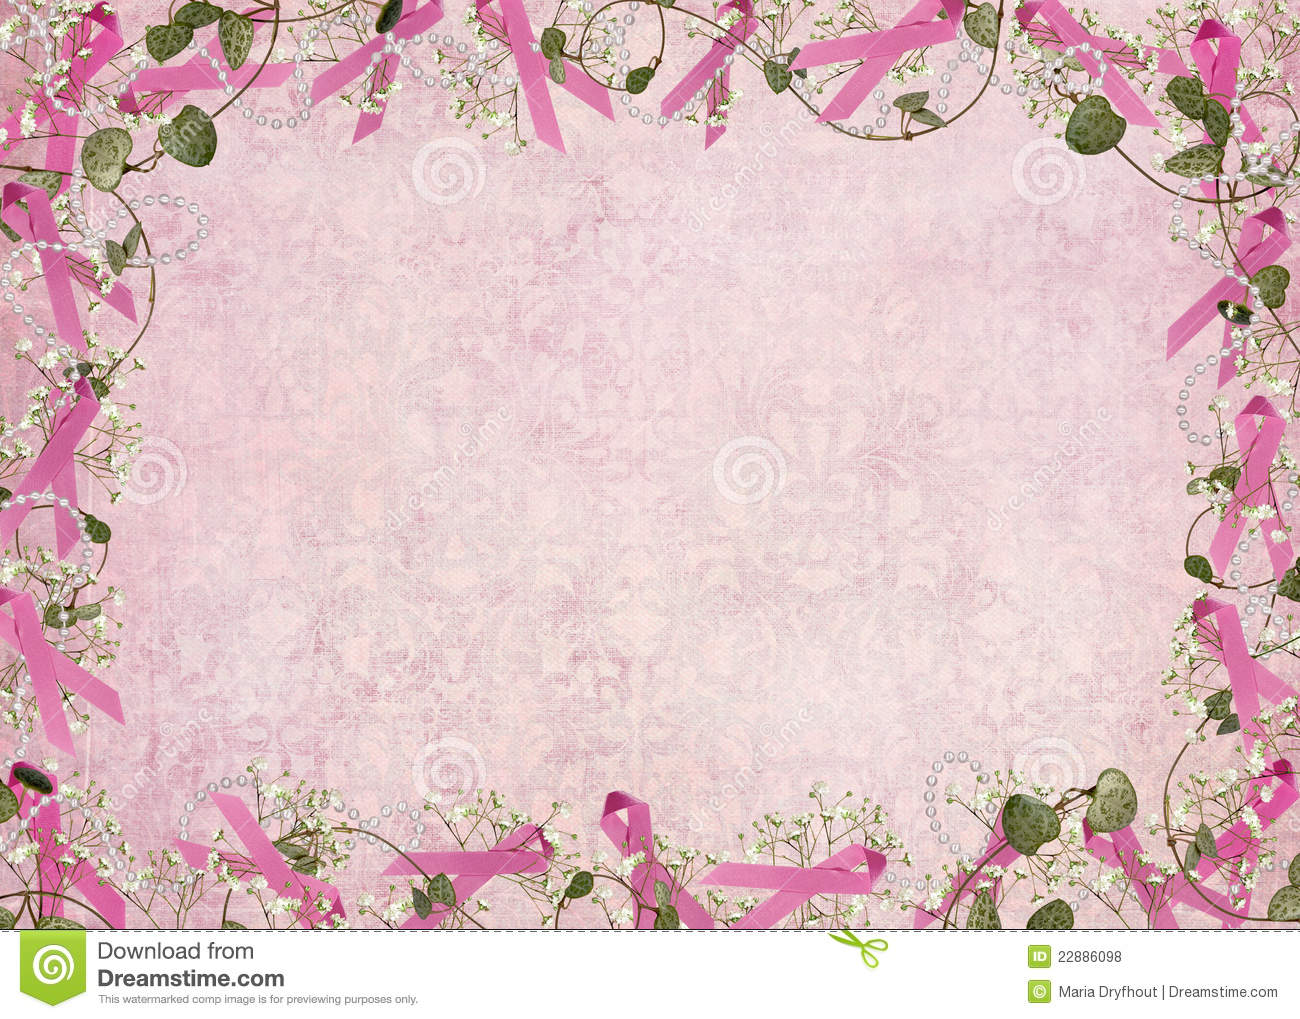 Breast cancer awareness ribbon border with ivy and pearls on damask ...